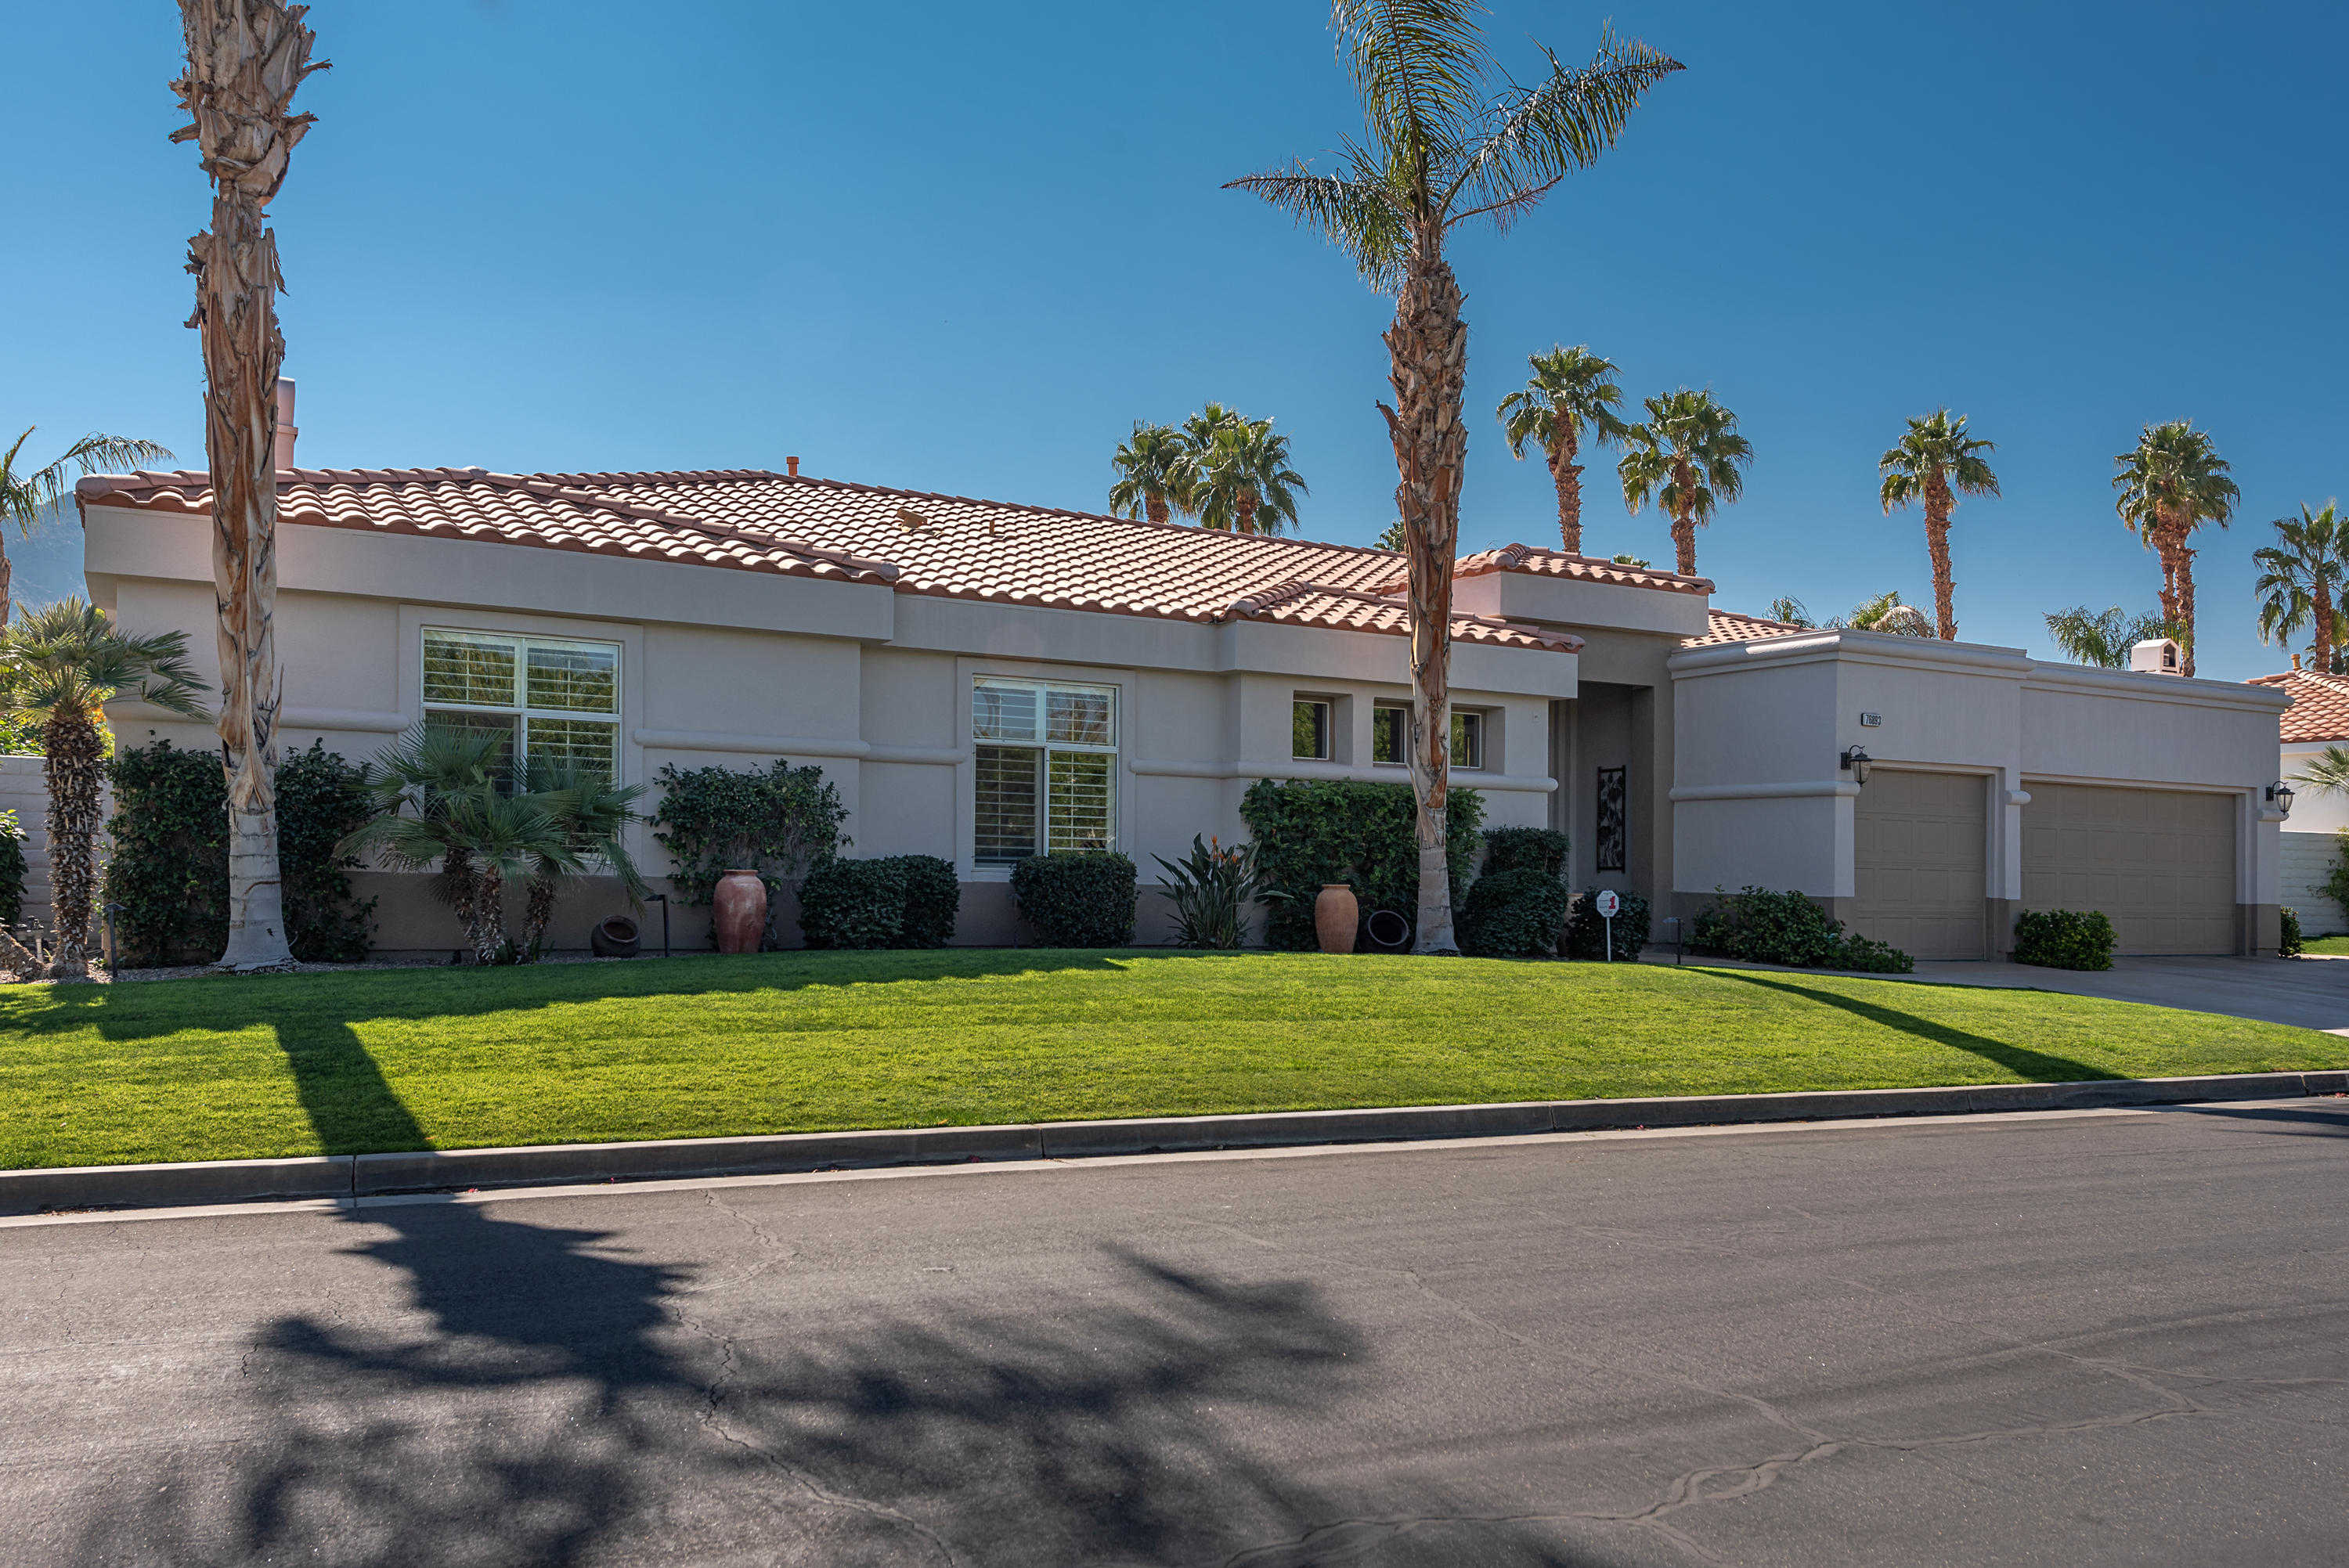 $899,000 - 4Br/3Ba -  for Sale in Indian Wells Country Club, Indian Wells